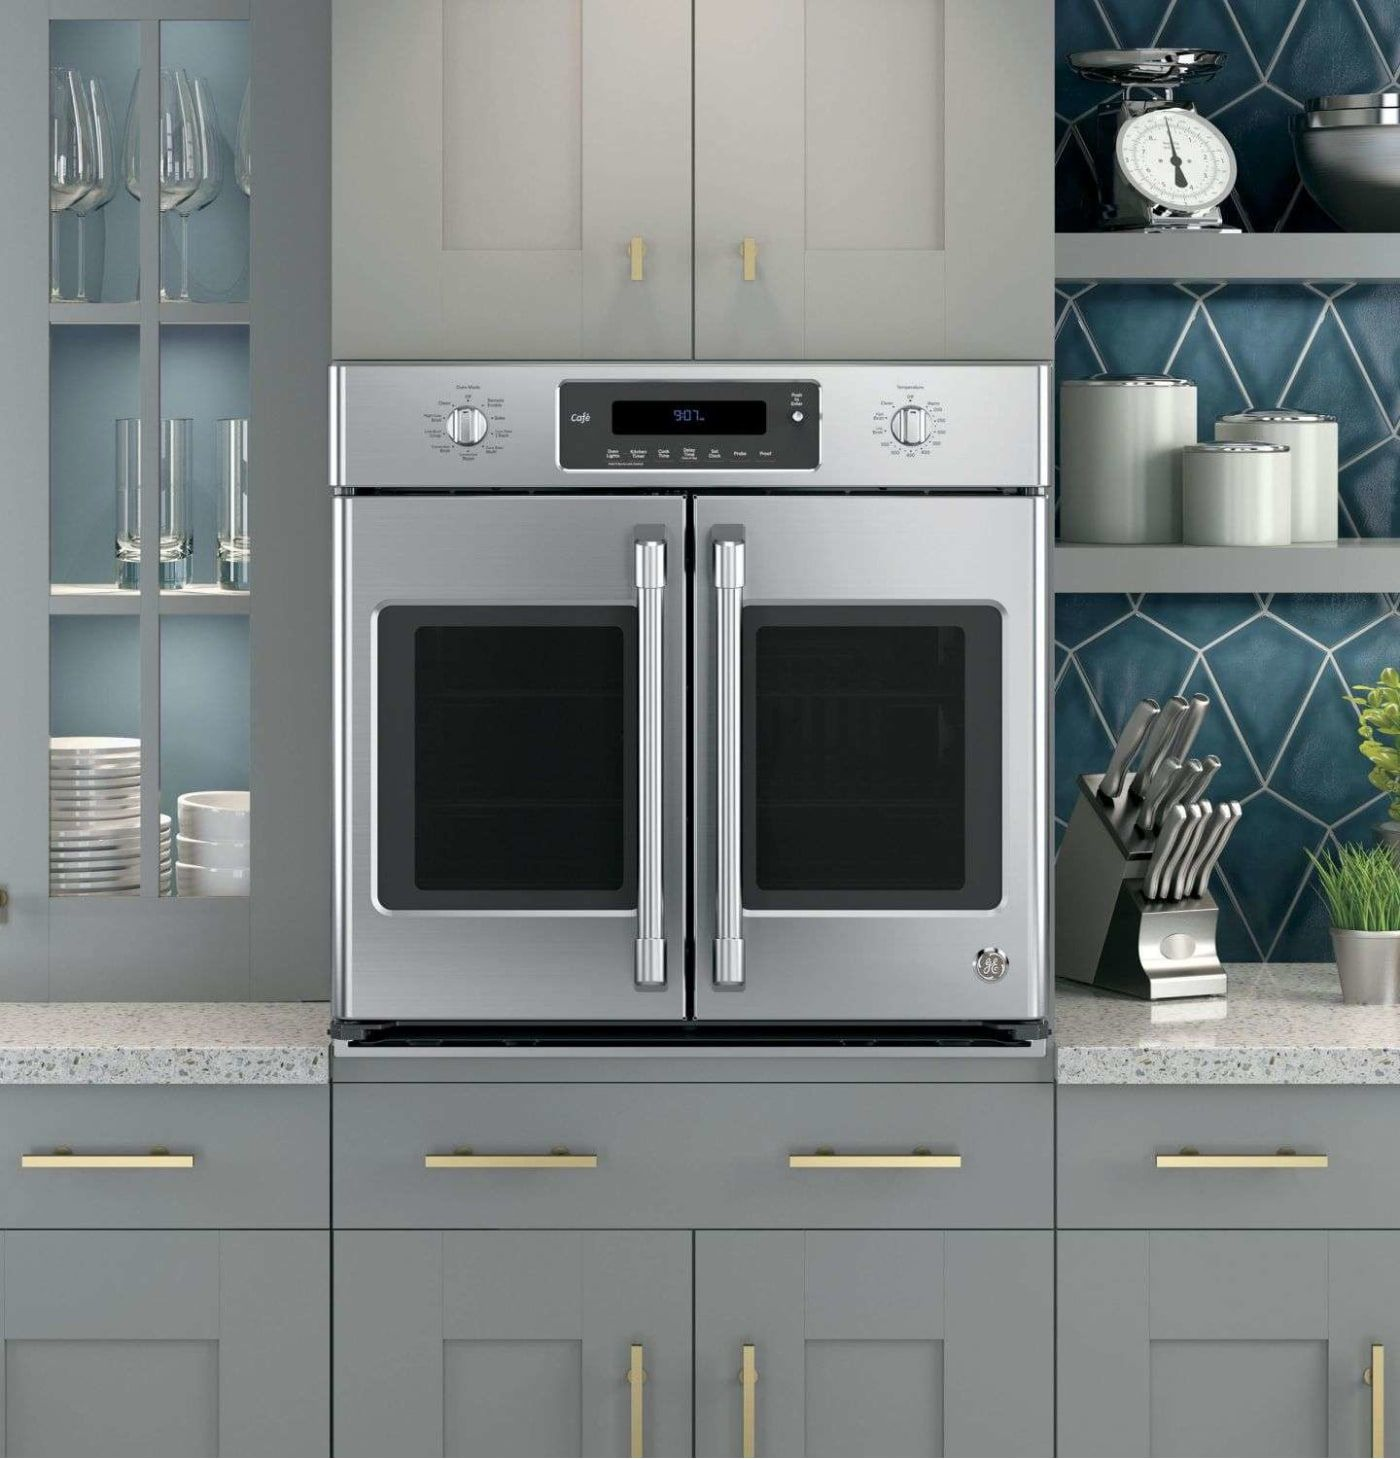 Single french door interior cafe ctshss  kitchen  pinterest  wall oven kitchen and